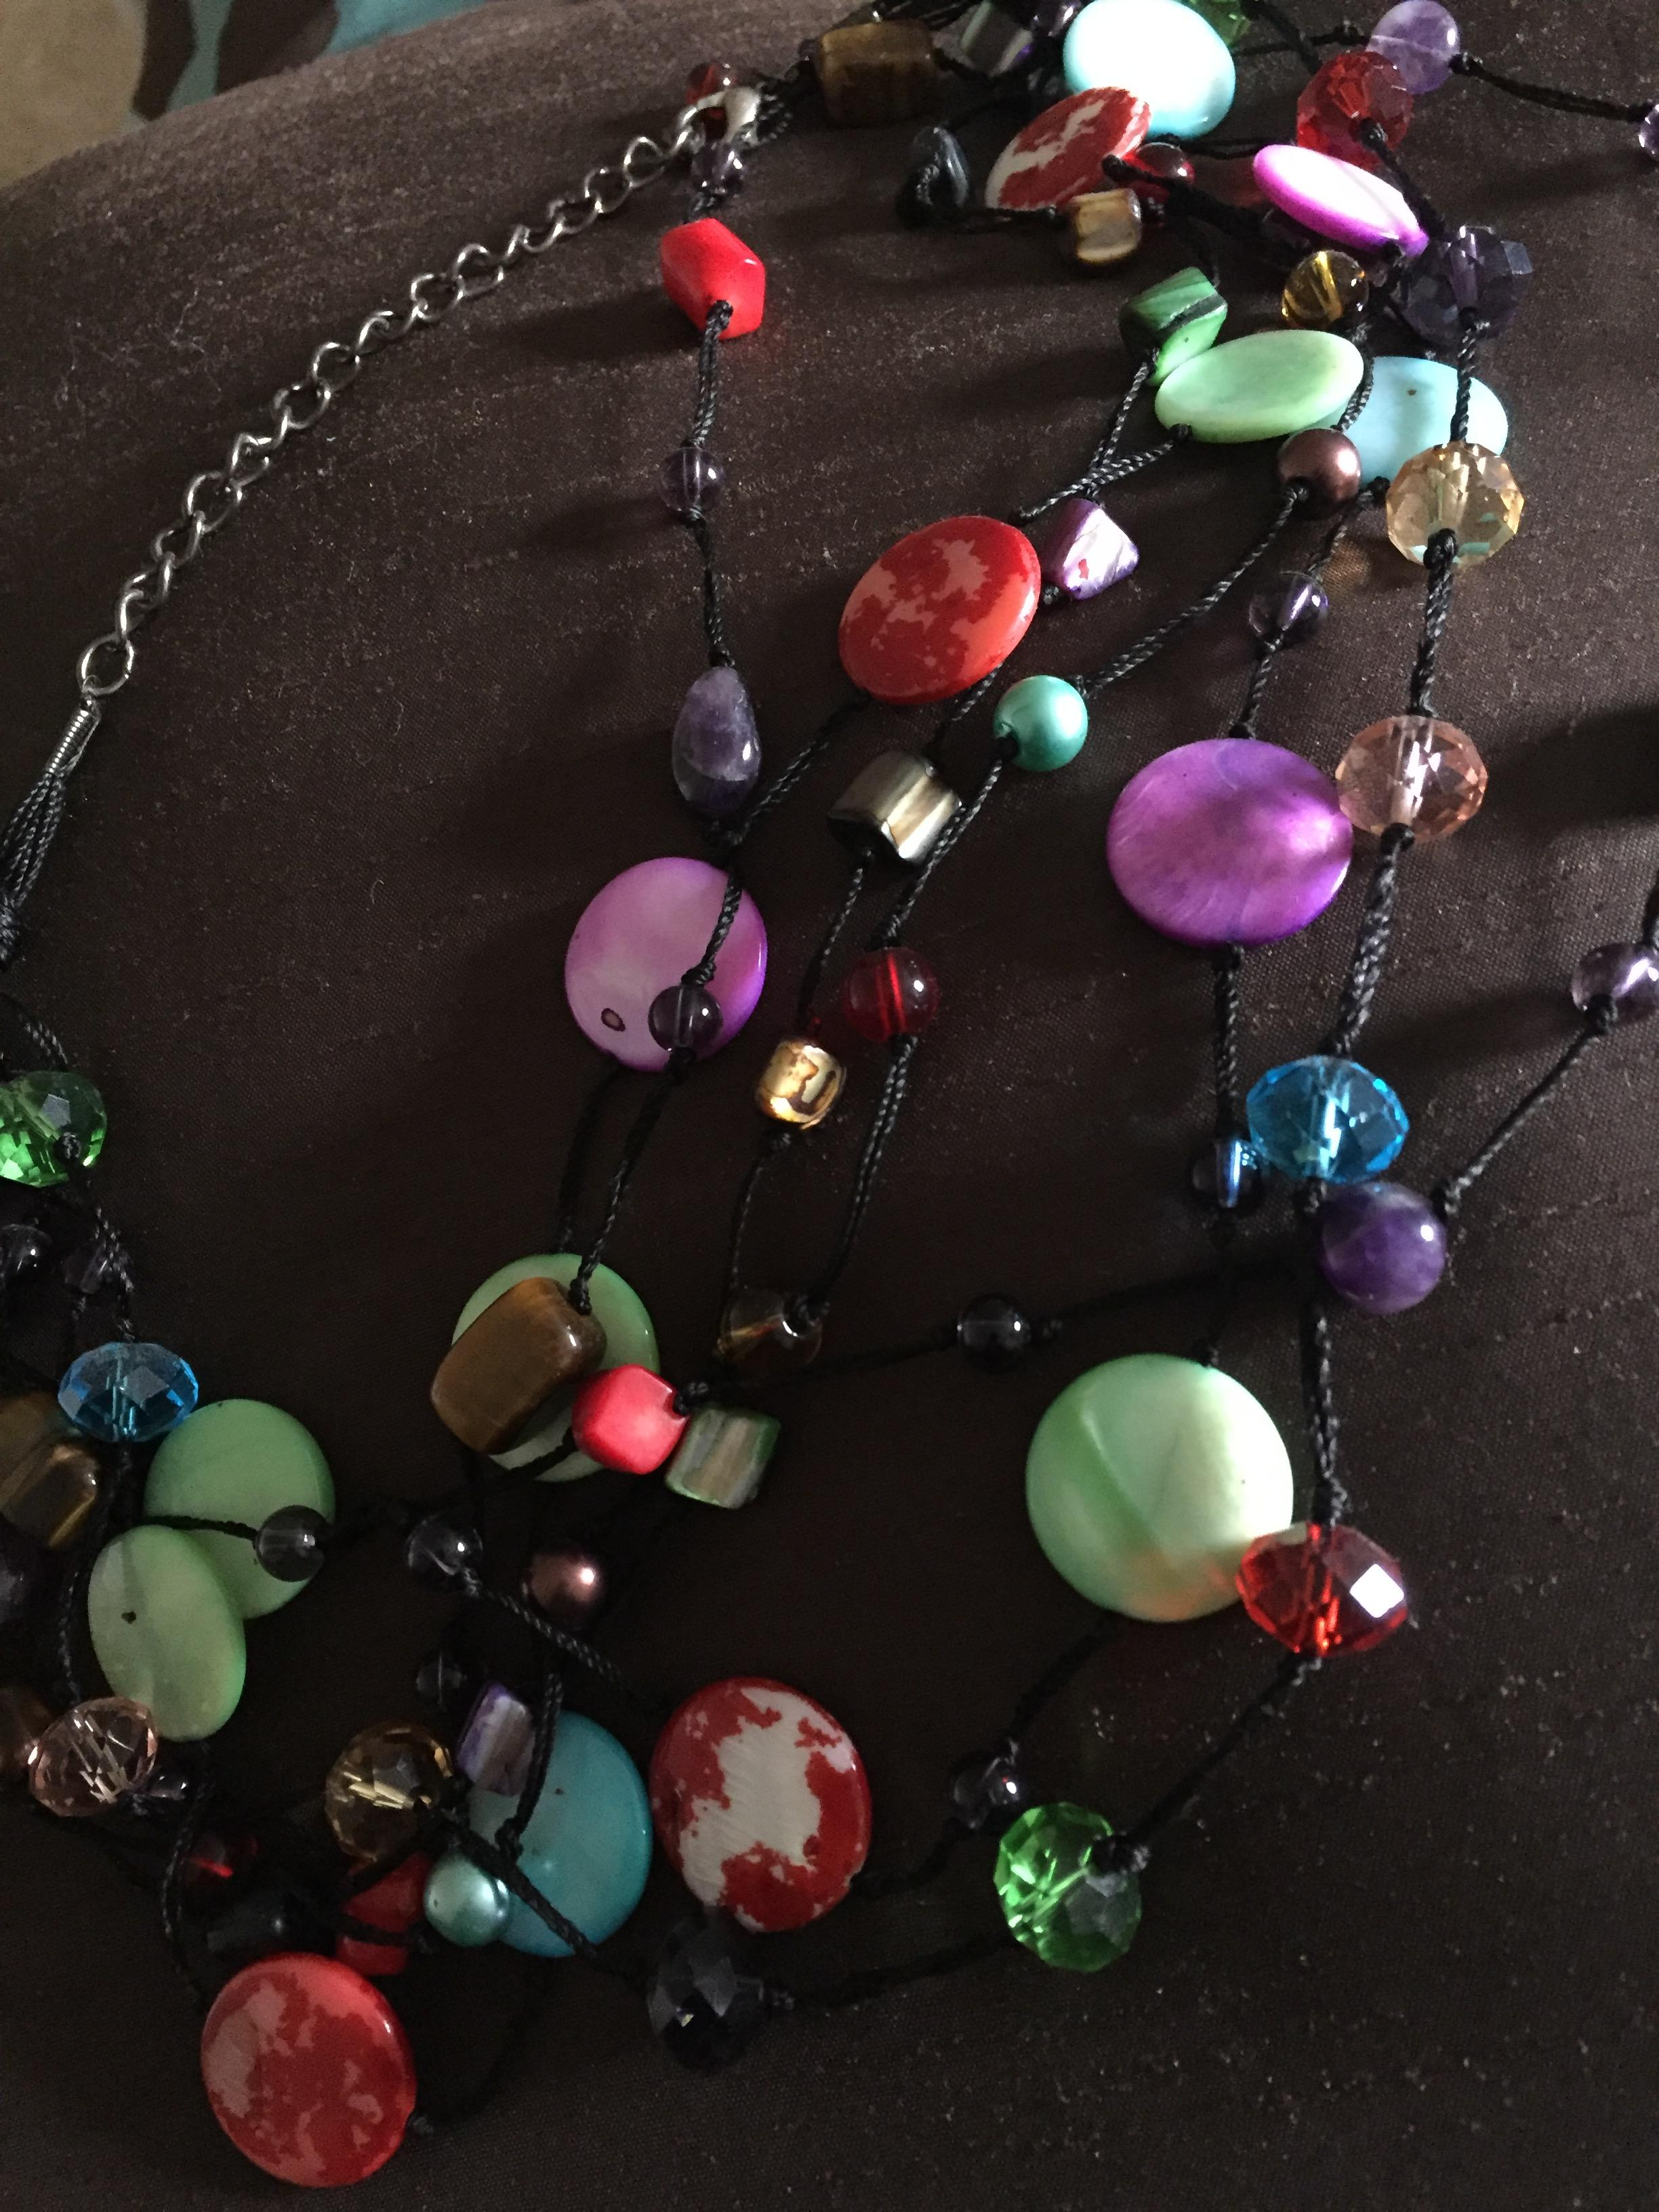 The Bracelet Is Tarnished And Charms Fell Off Paint Ling Colorful Necklace My Costume Jewelry From Lasted Longer